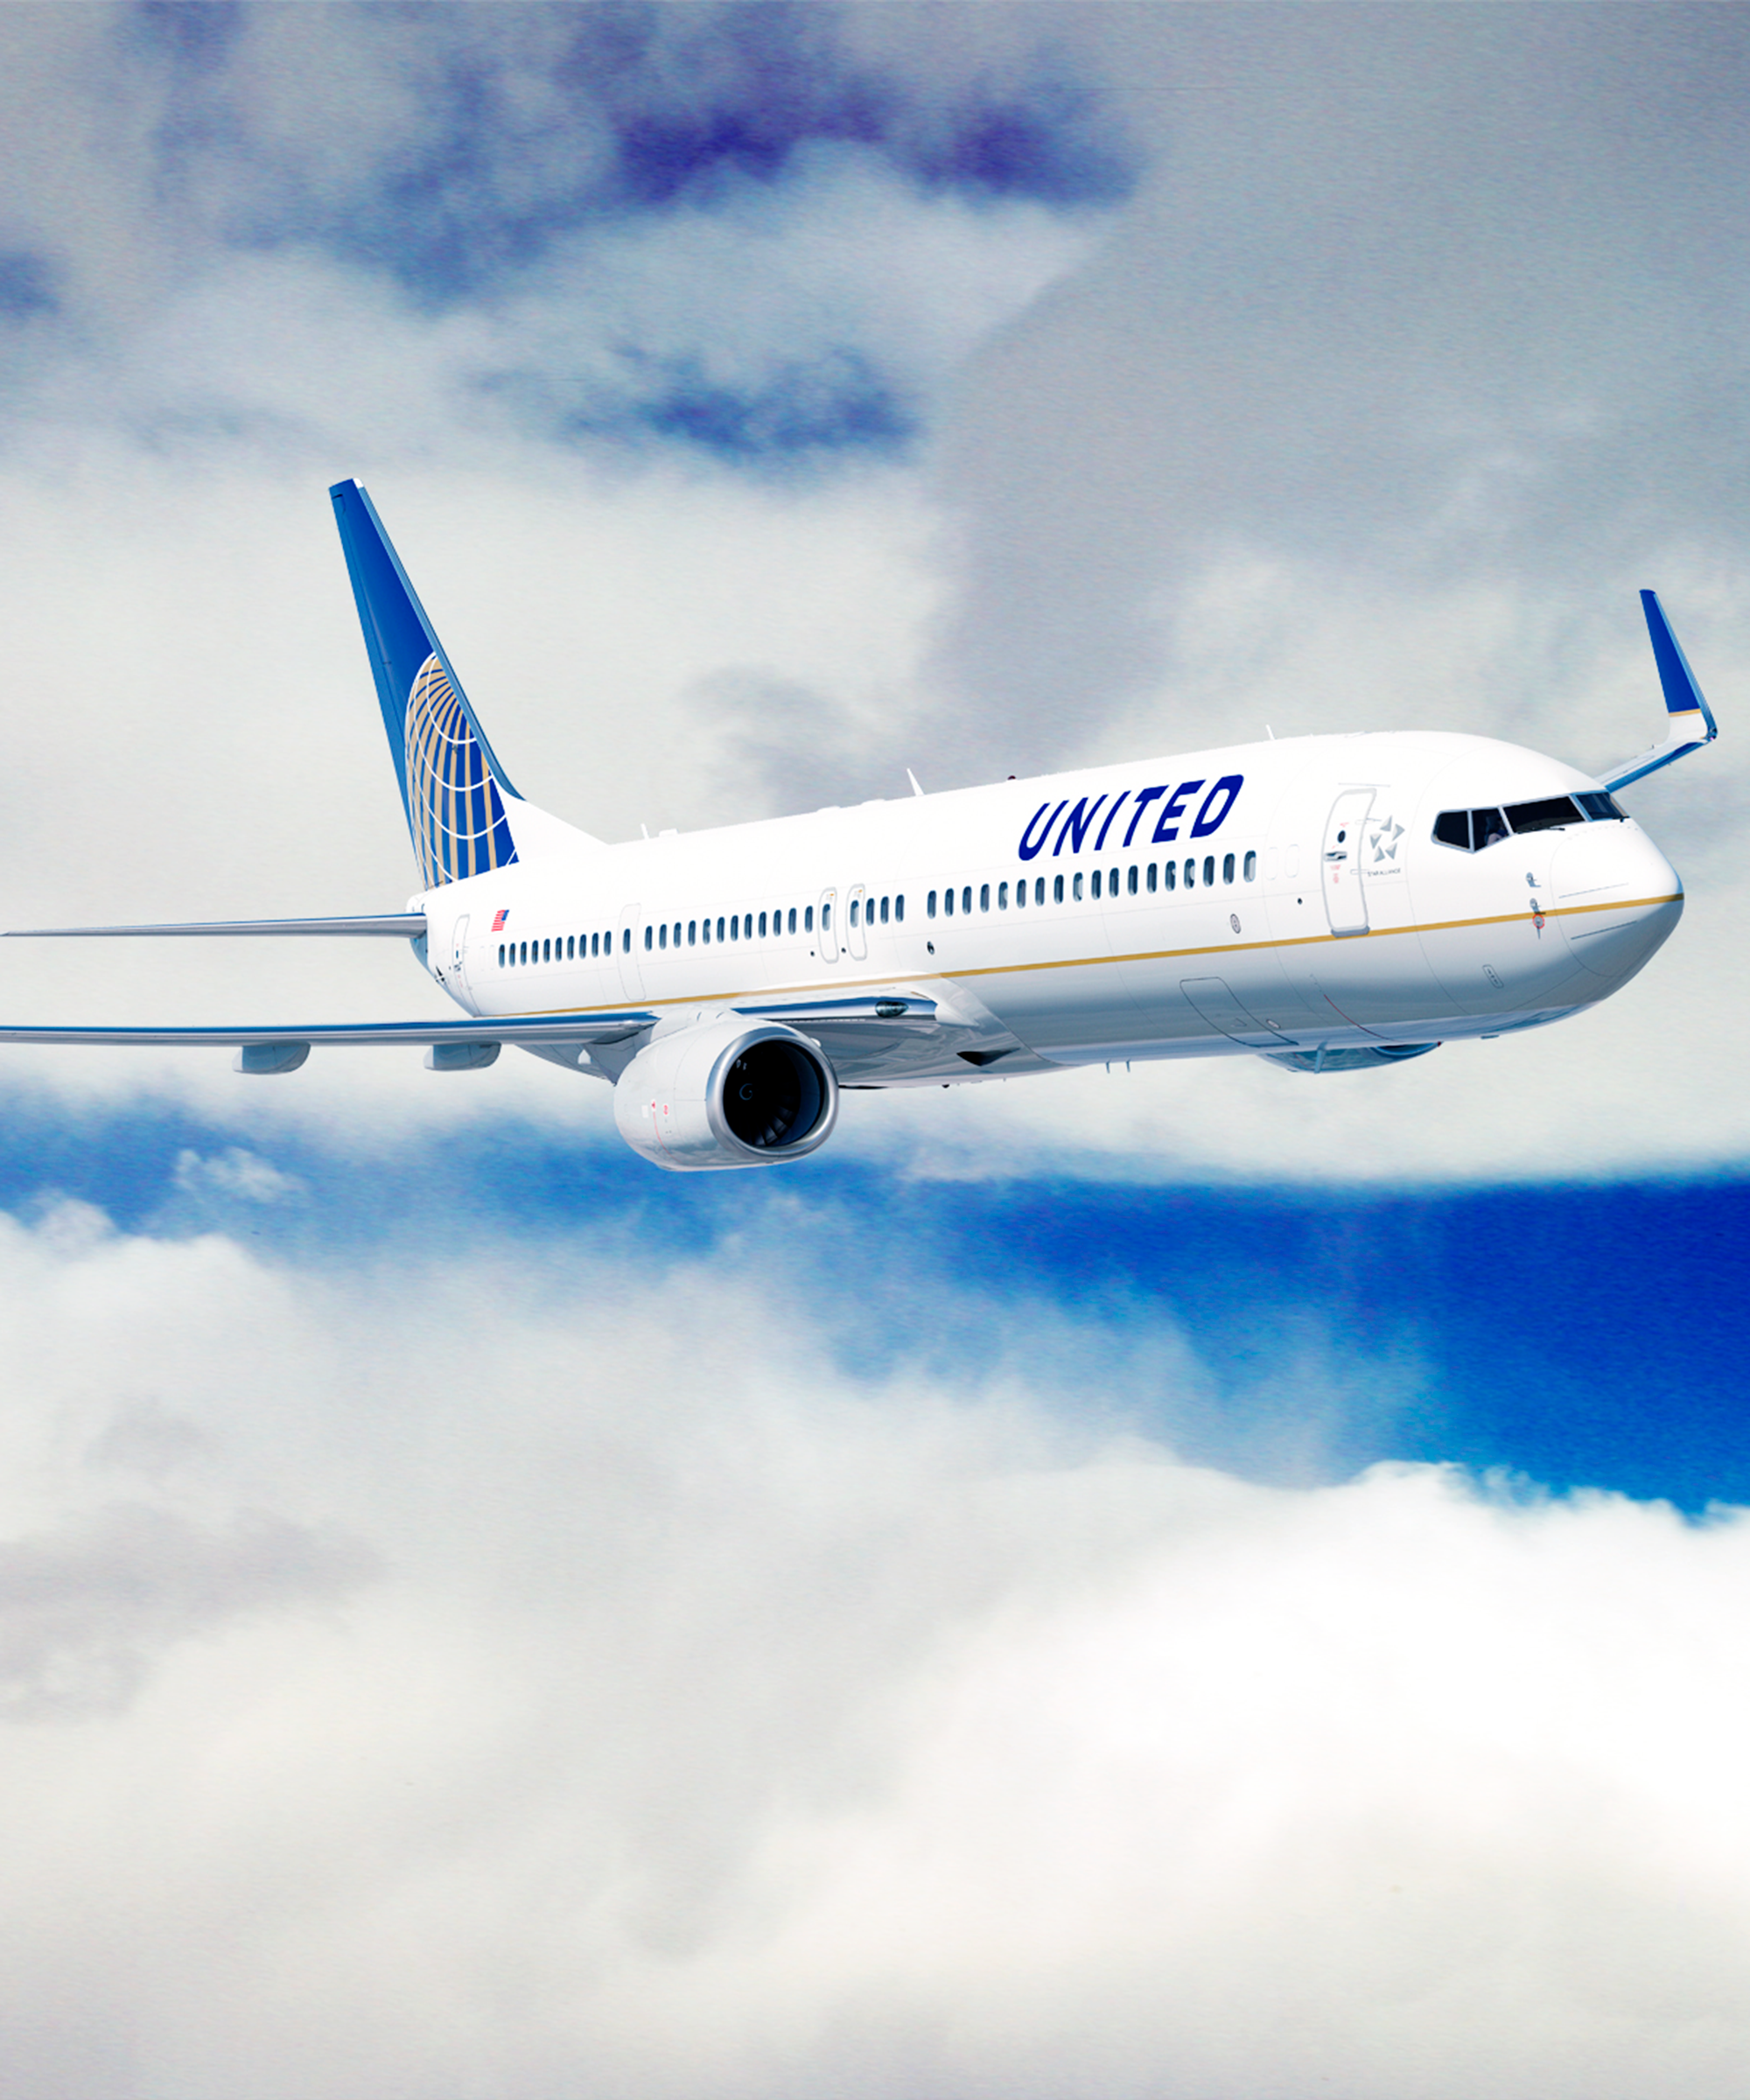 Add a dead rabbit to United Airlines' long list of PR woes